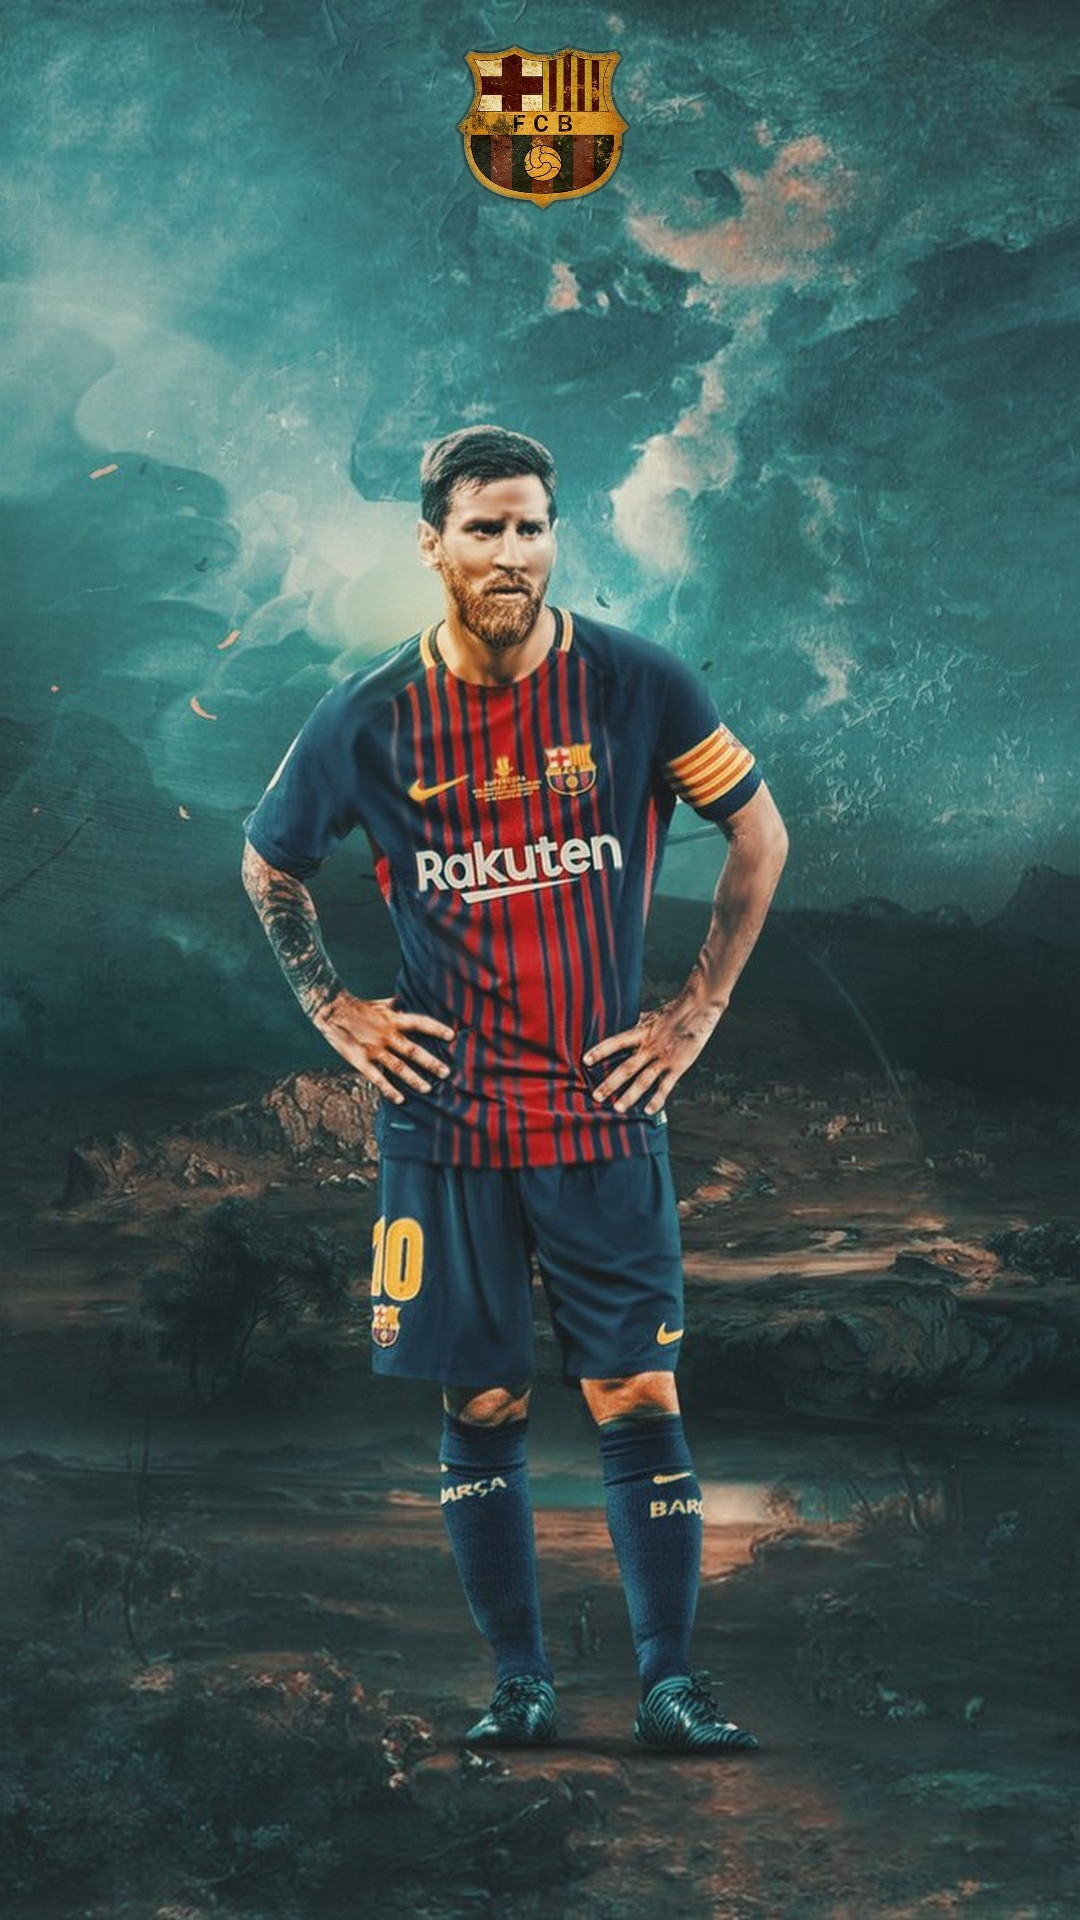 Lionel Messi Barcelona HD Wallpaper For iPhone with resolution 1080x1920 pixel. You can make this